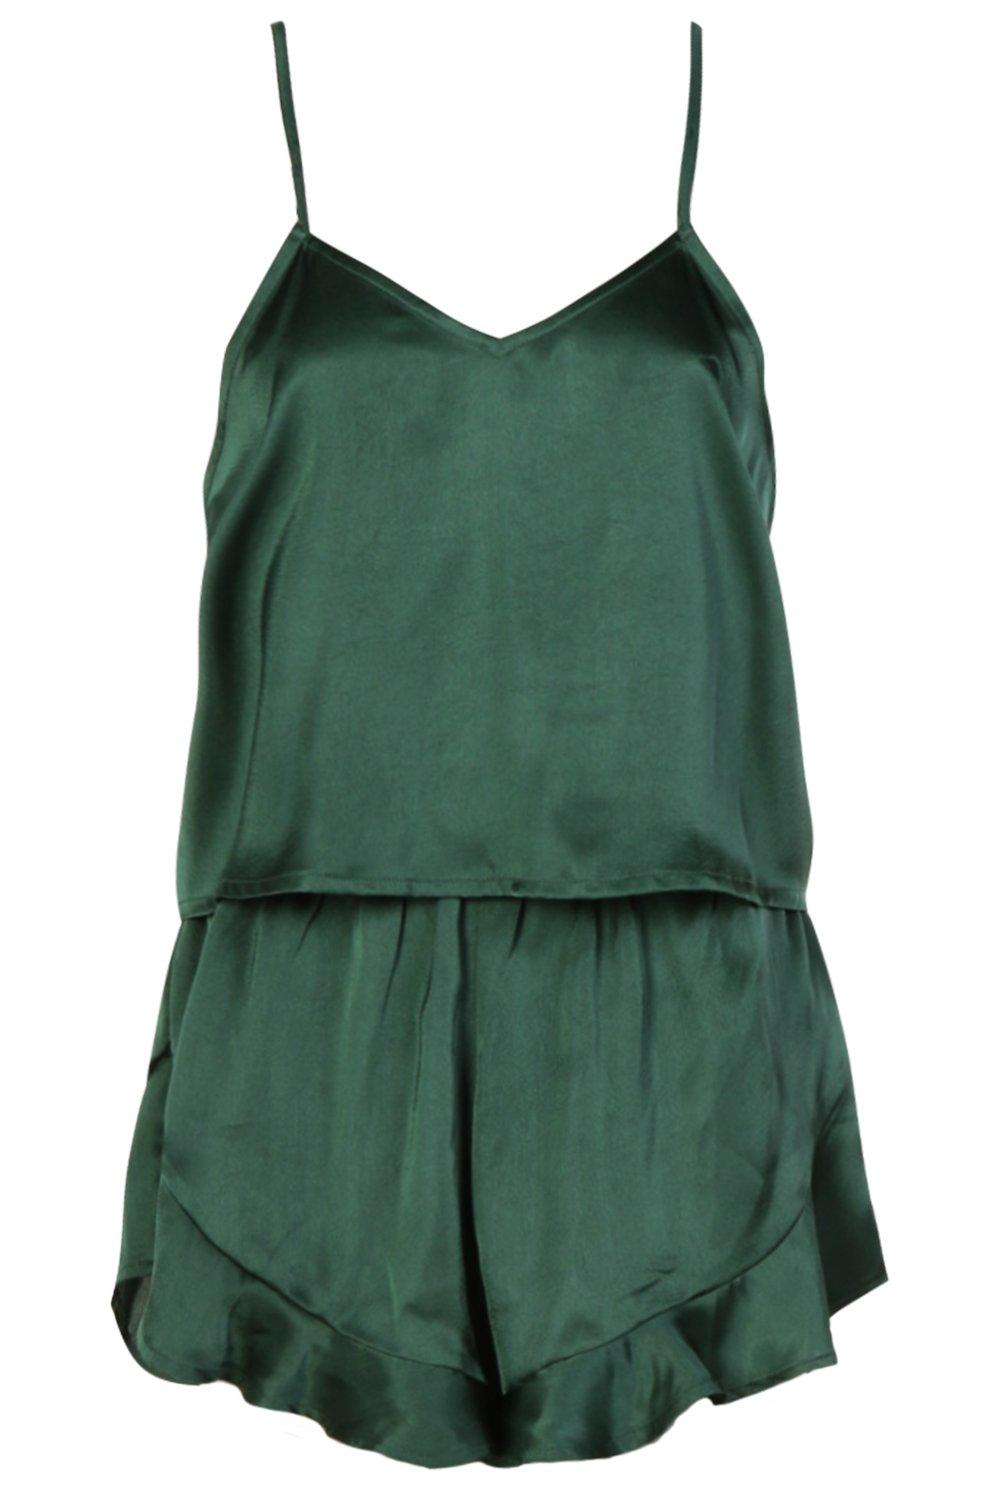 Short Satin dark Set Vest green amp; vvnxqZEP